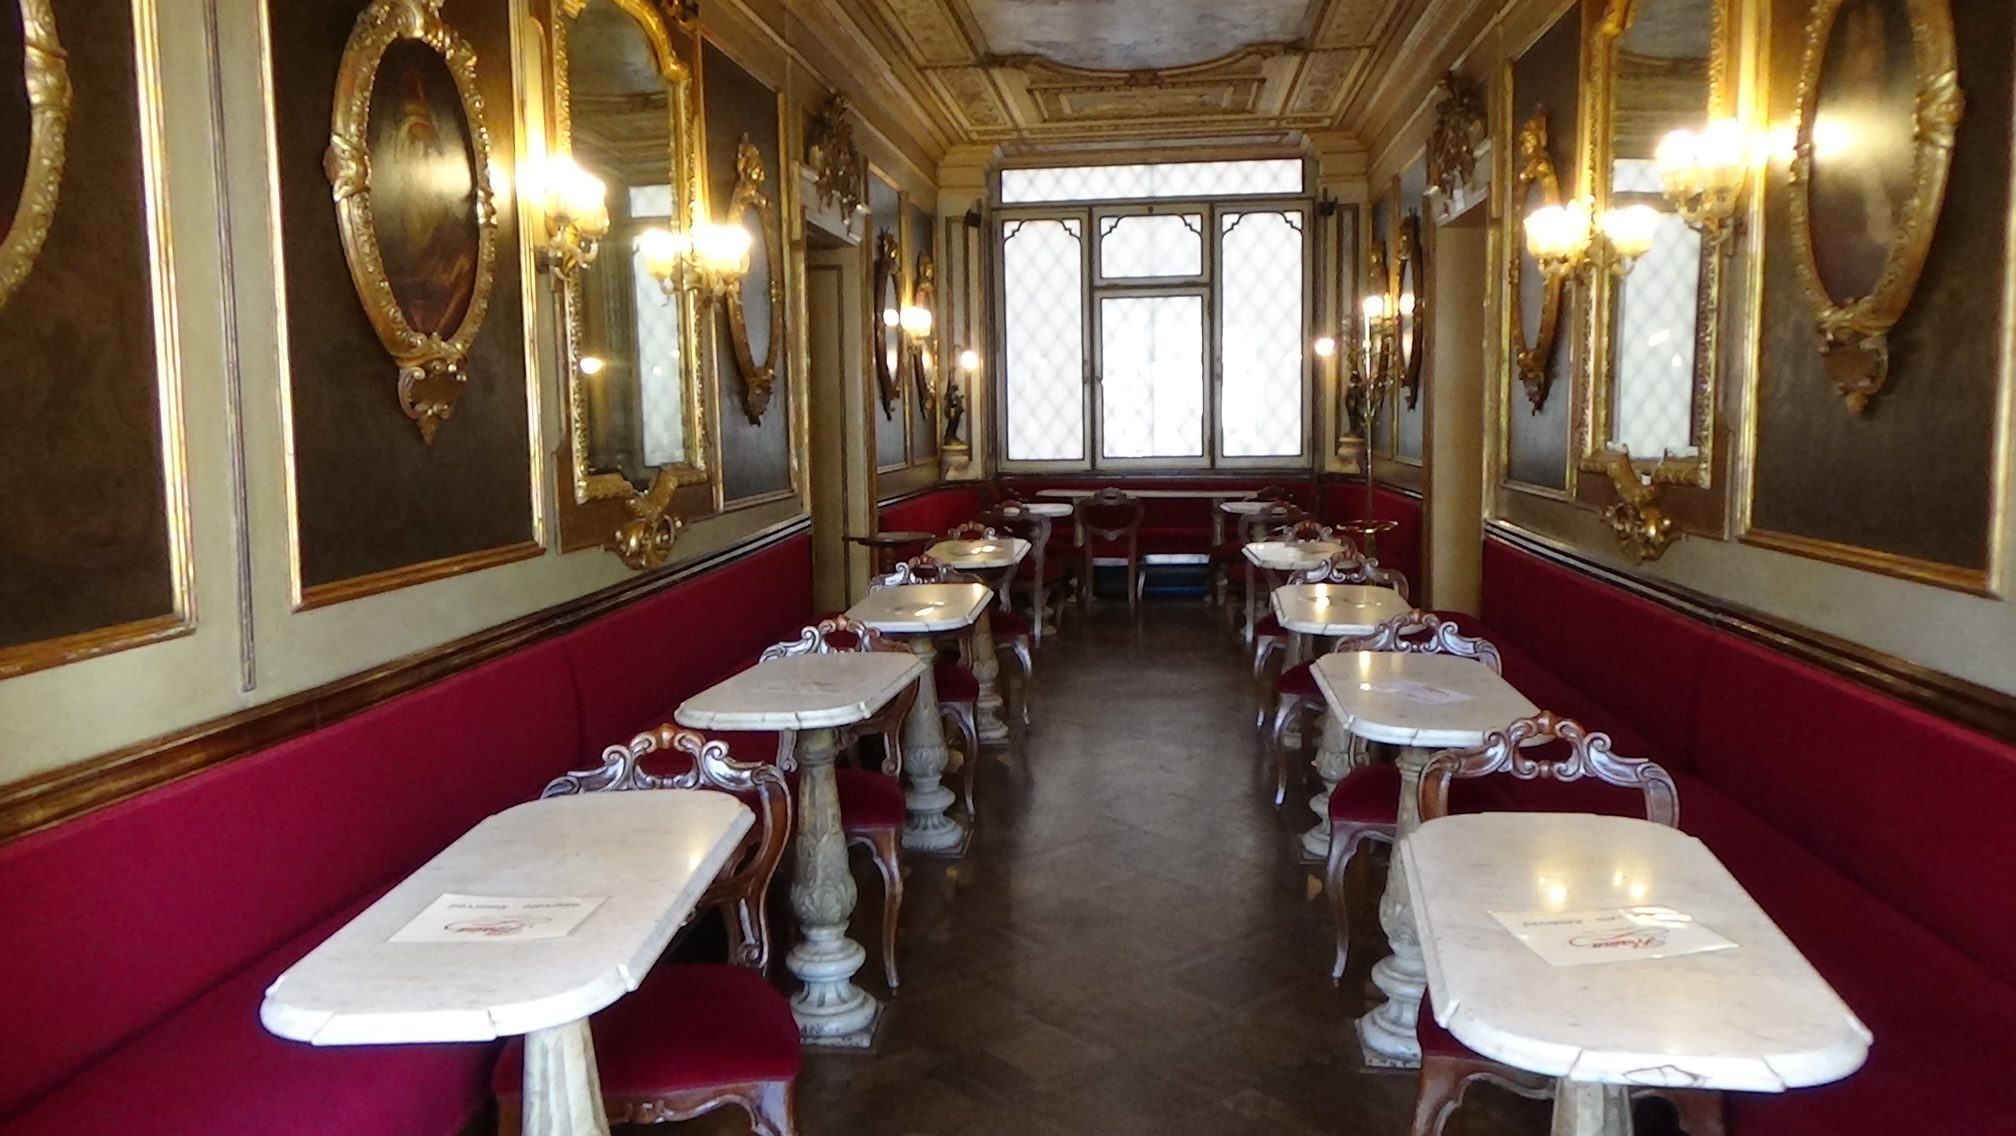 Florian Caffe in St. Mark's Square